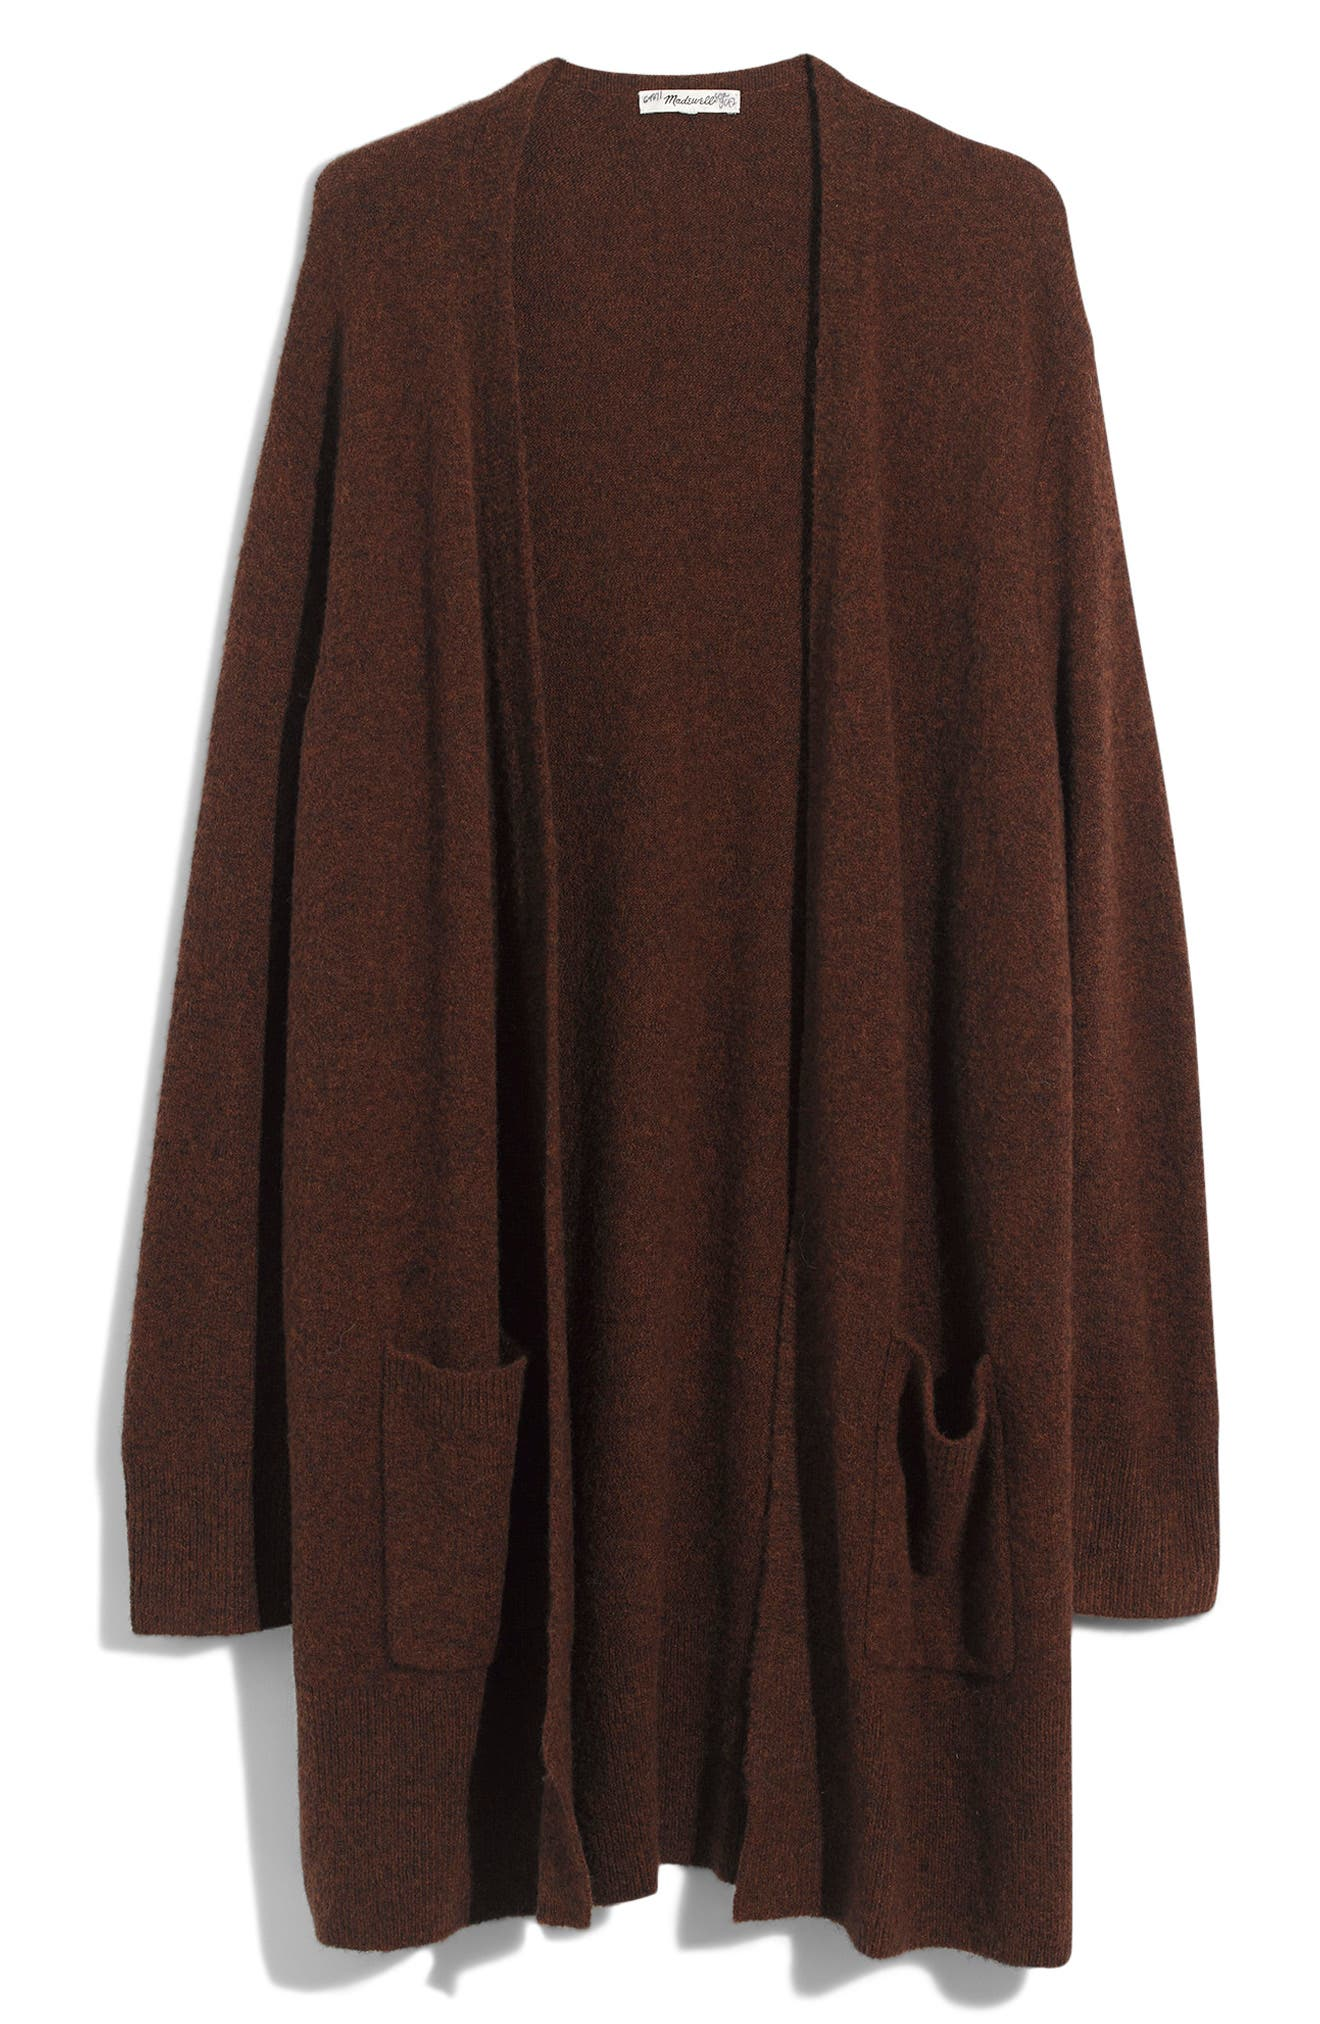 Plus Size Madewell Kent Cardigan Sweater, Brown